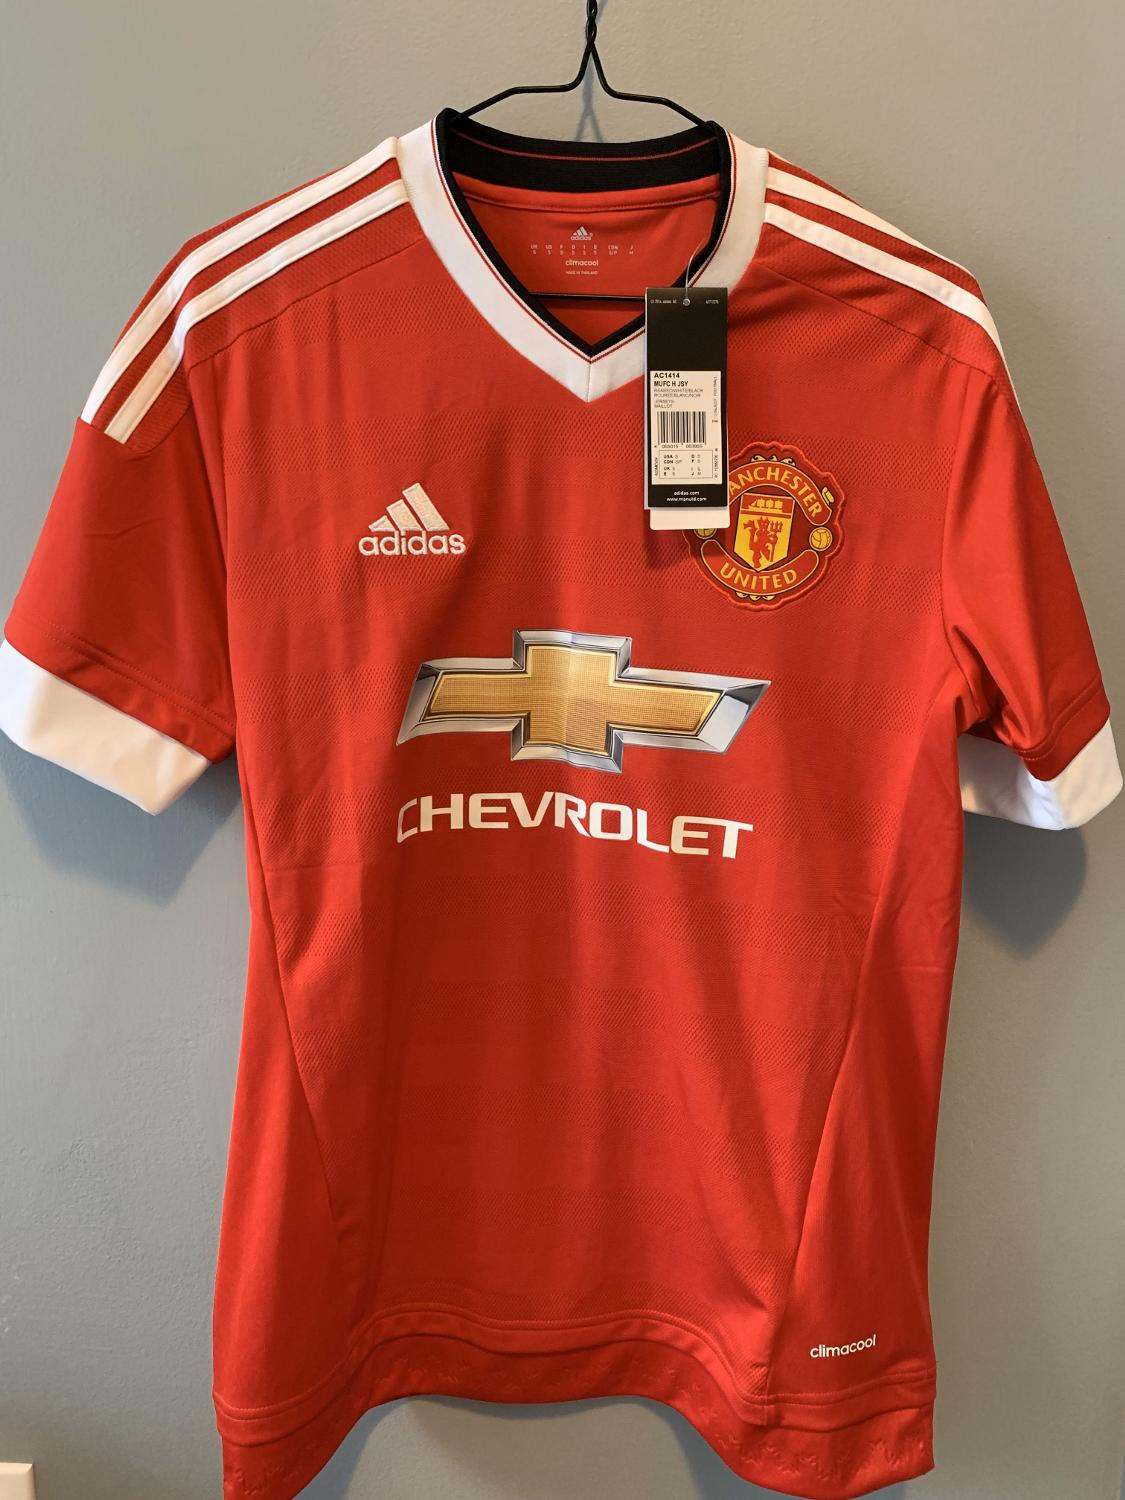 best scholes 22 manchester united tribute jersey home 2015 16 adidas small authentic for sale in hamilton ontario for 2020 scholes 22 manchester united tribute jersey home 2015 16 adidas small authentic